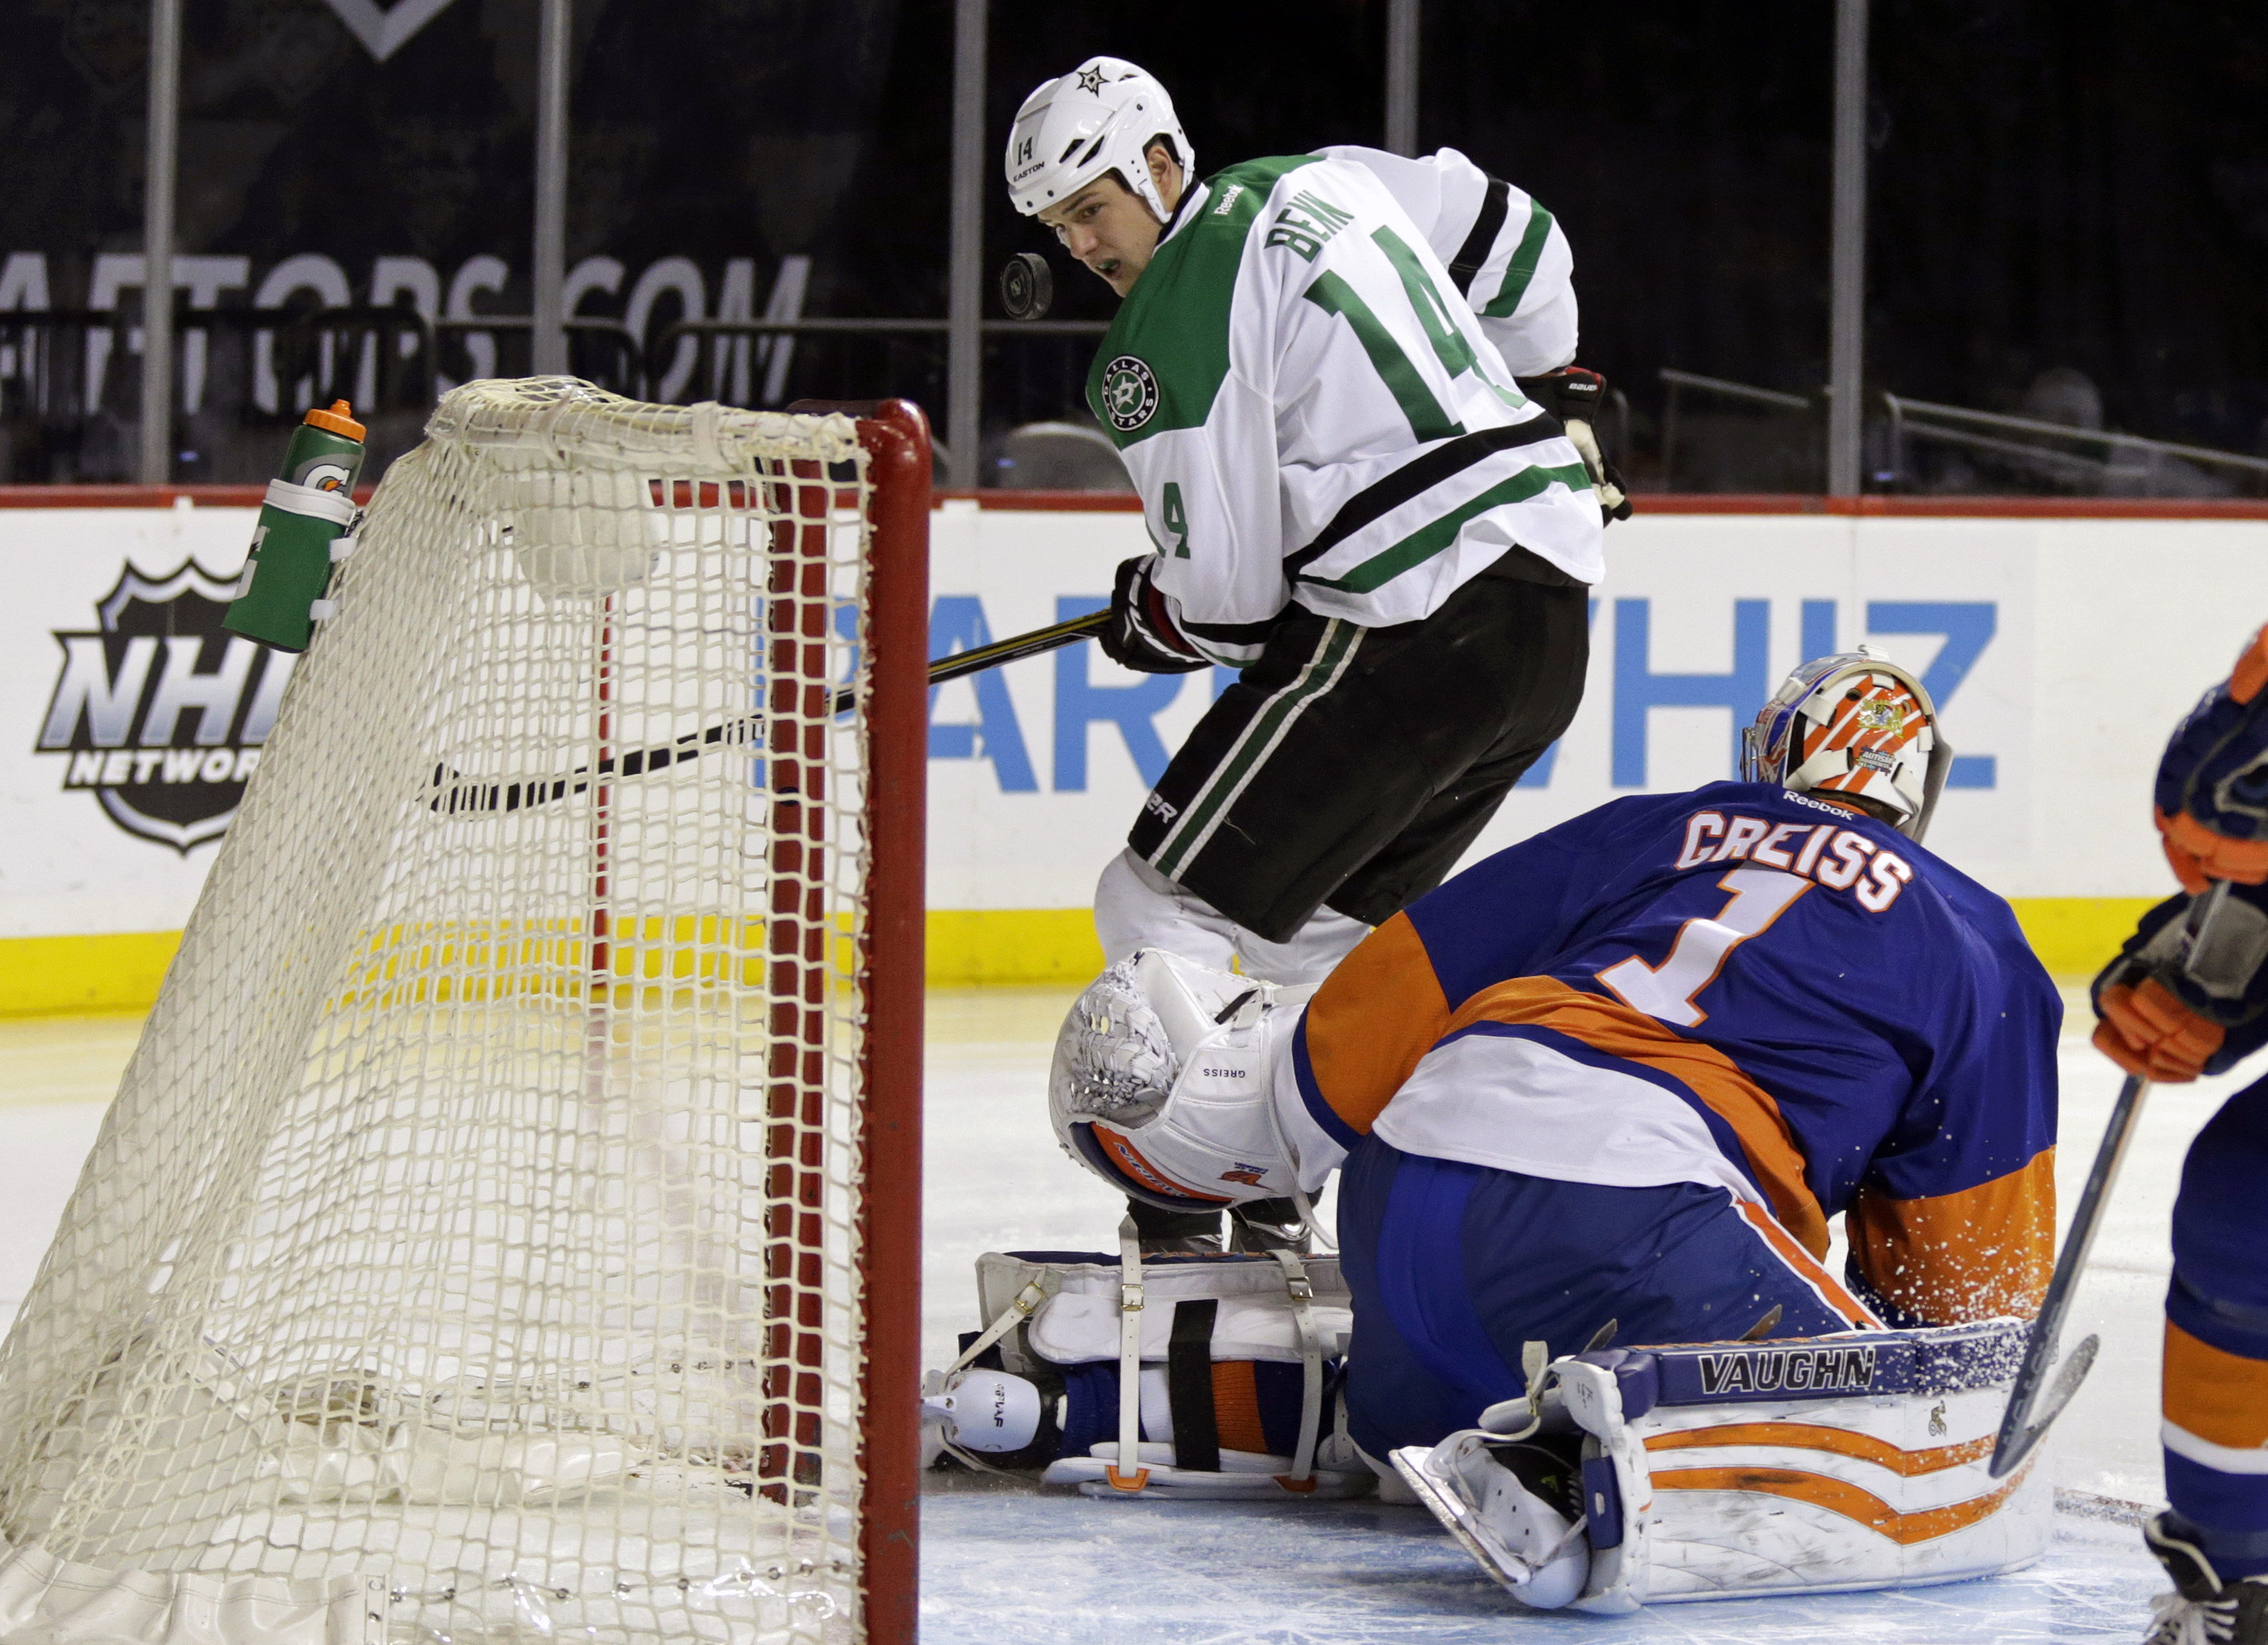 Dallas Stars left wing Jamie Benn (14) keeps his eye on the puck after New York Islanders goalie Thomas Greiss (1) made a save in the first period of an NHL hockey game Sunday, Jan. 3, 2016, in New York. (AP Photo/Adam Hunger)